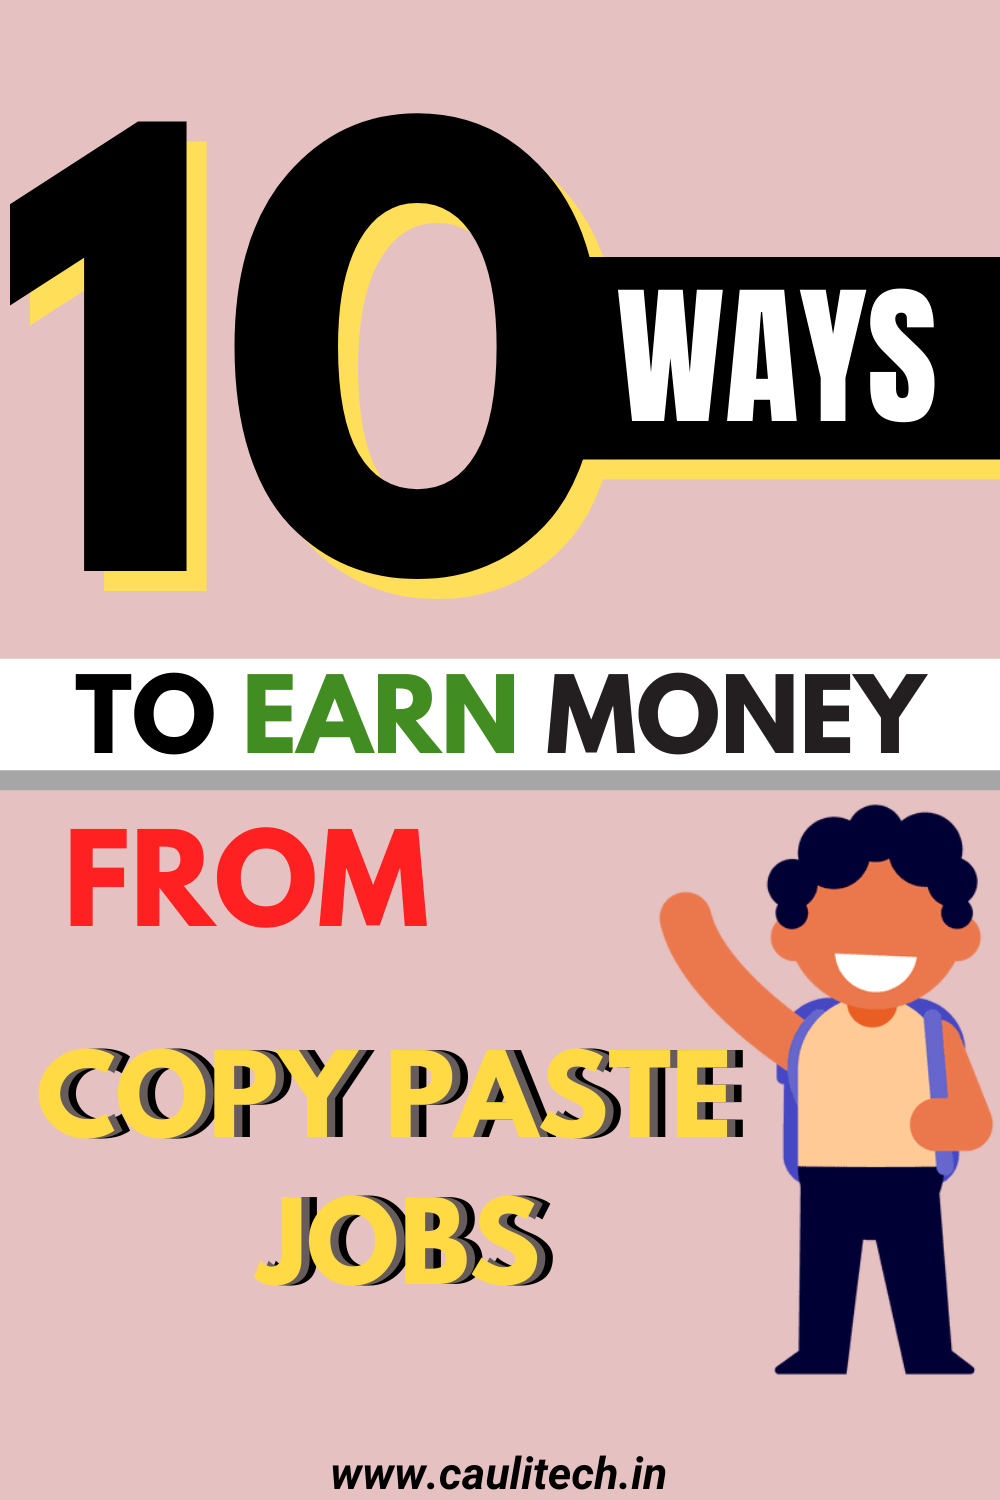 What is copy paste jobs actually? Does it actually work